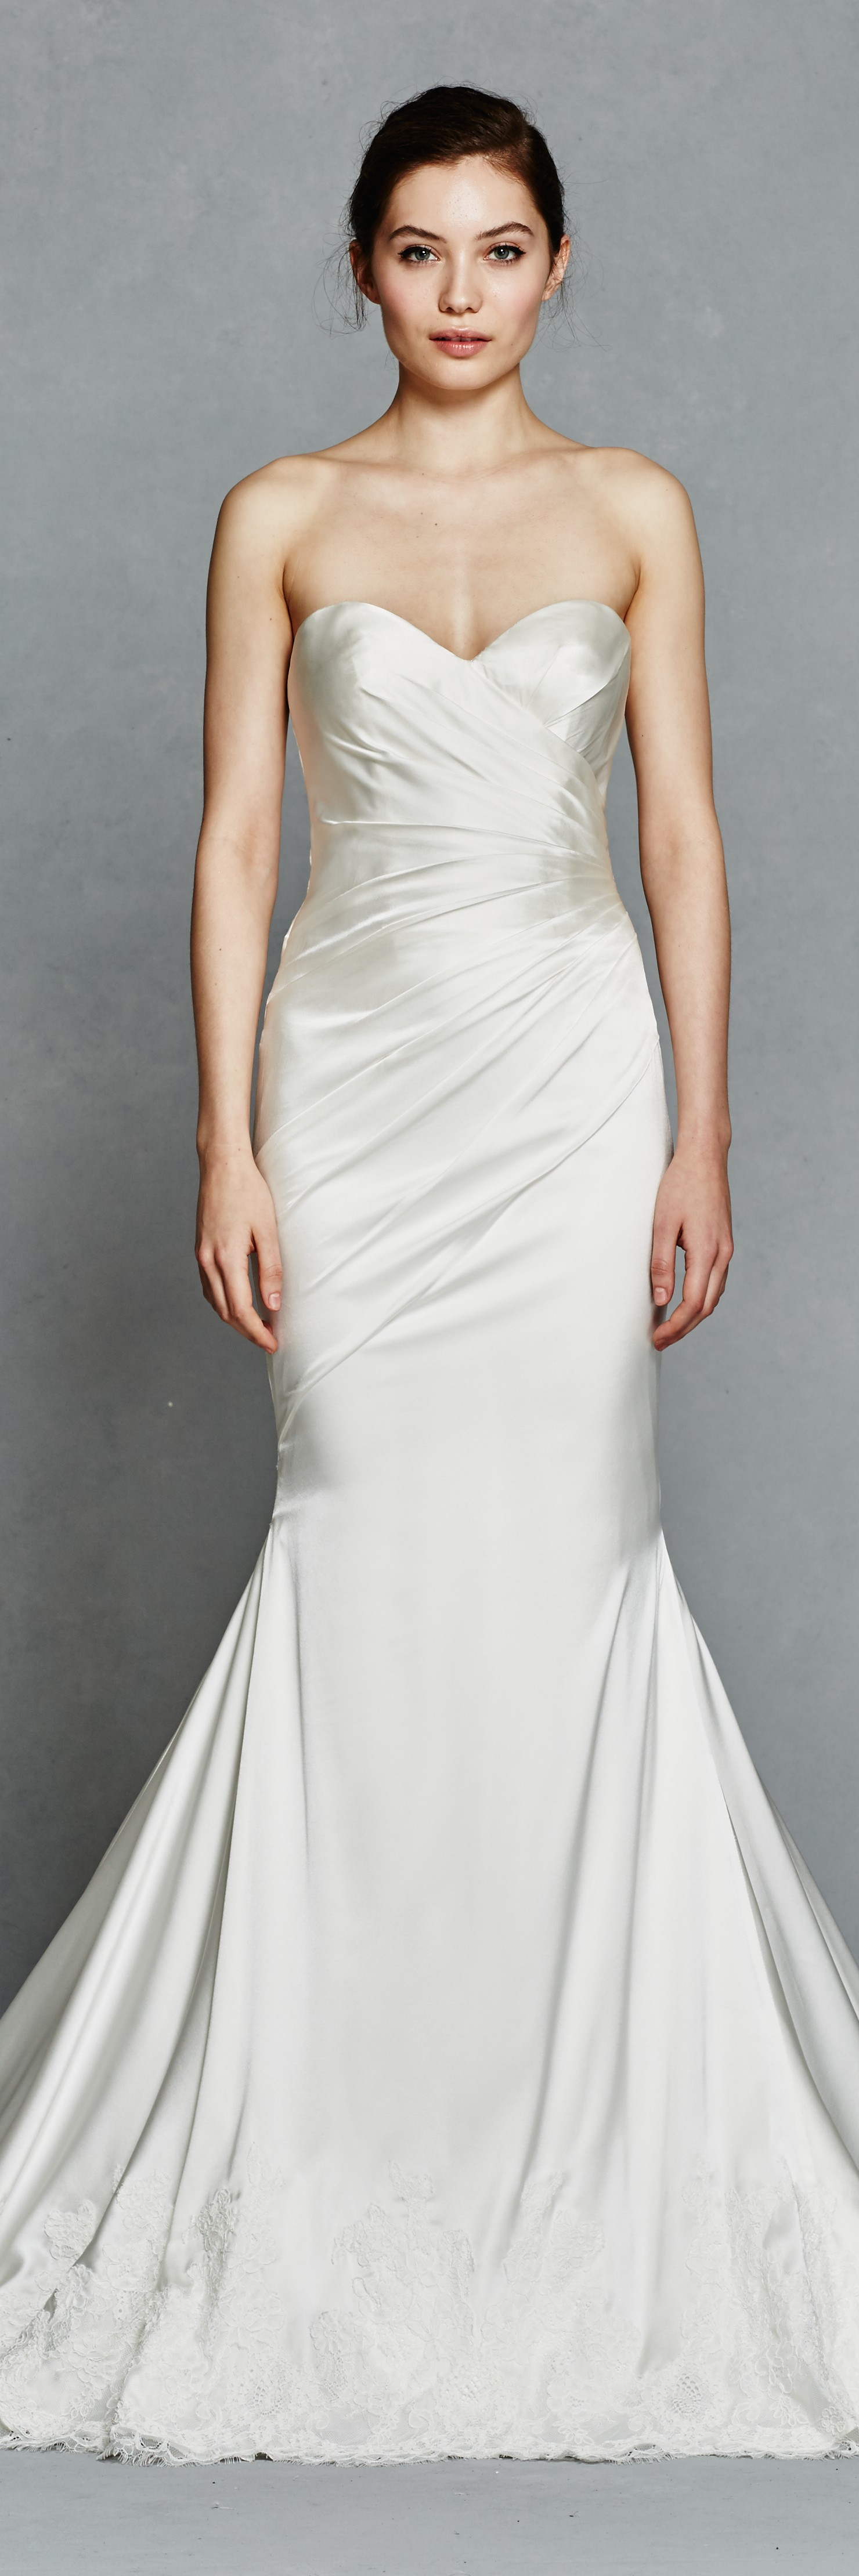 Cinderella inspired wedding dress  Silk Stretch Satin pleated fit to flare strapless wedding gown from